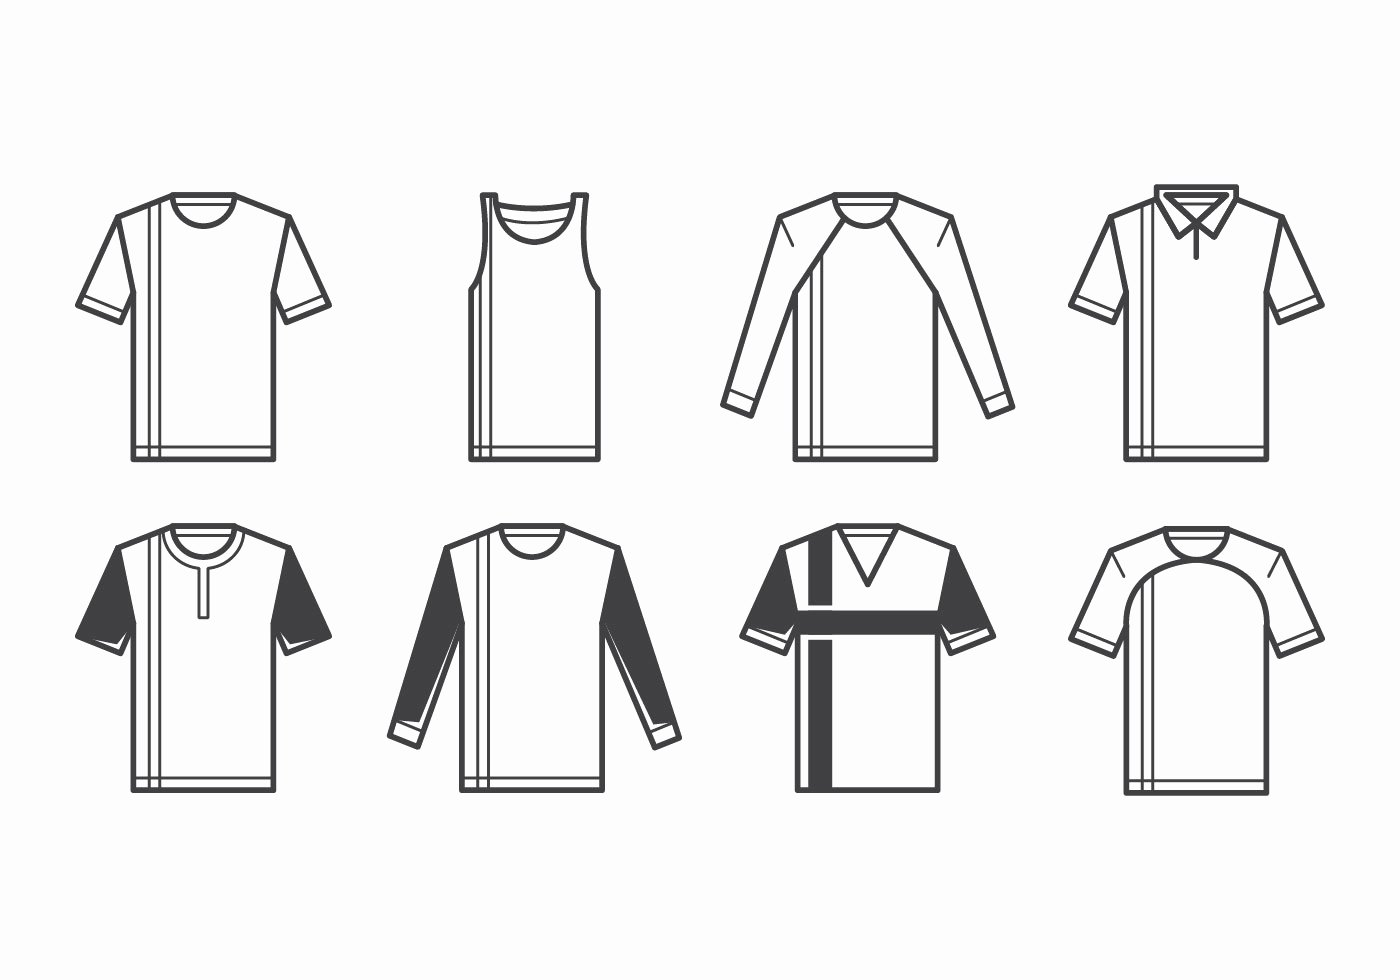 T Shirt Vector Template Lovely T Shirt Template Vector Download Free Vector Art Stock